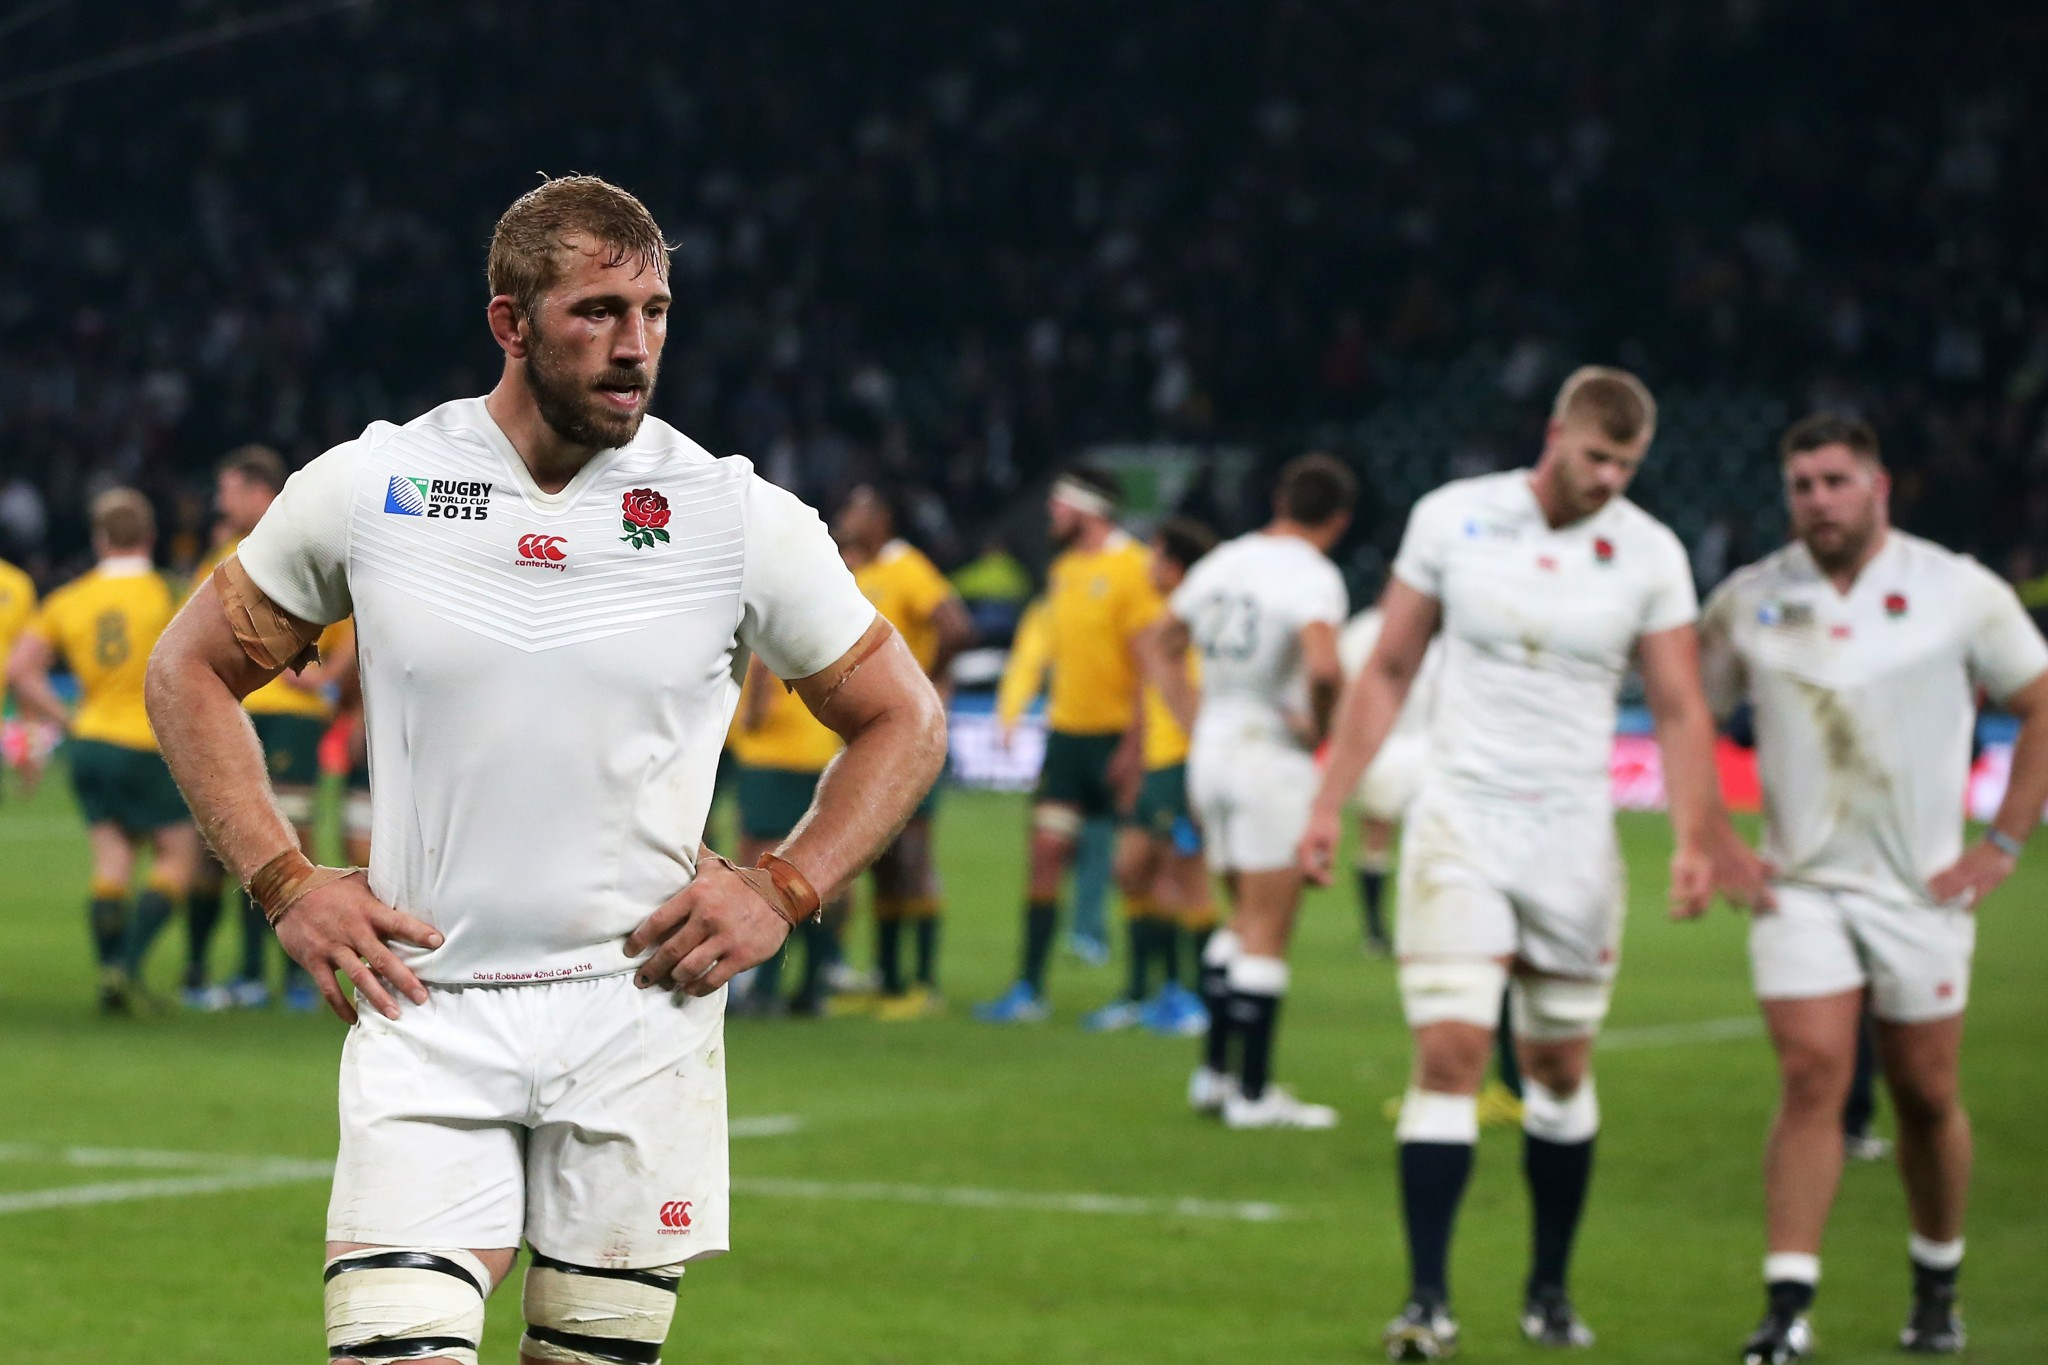 Chris Robshaw disappointed after Australia defeat